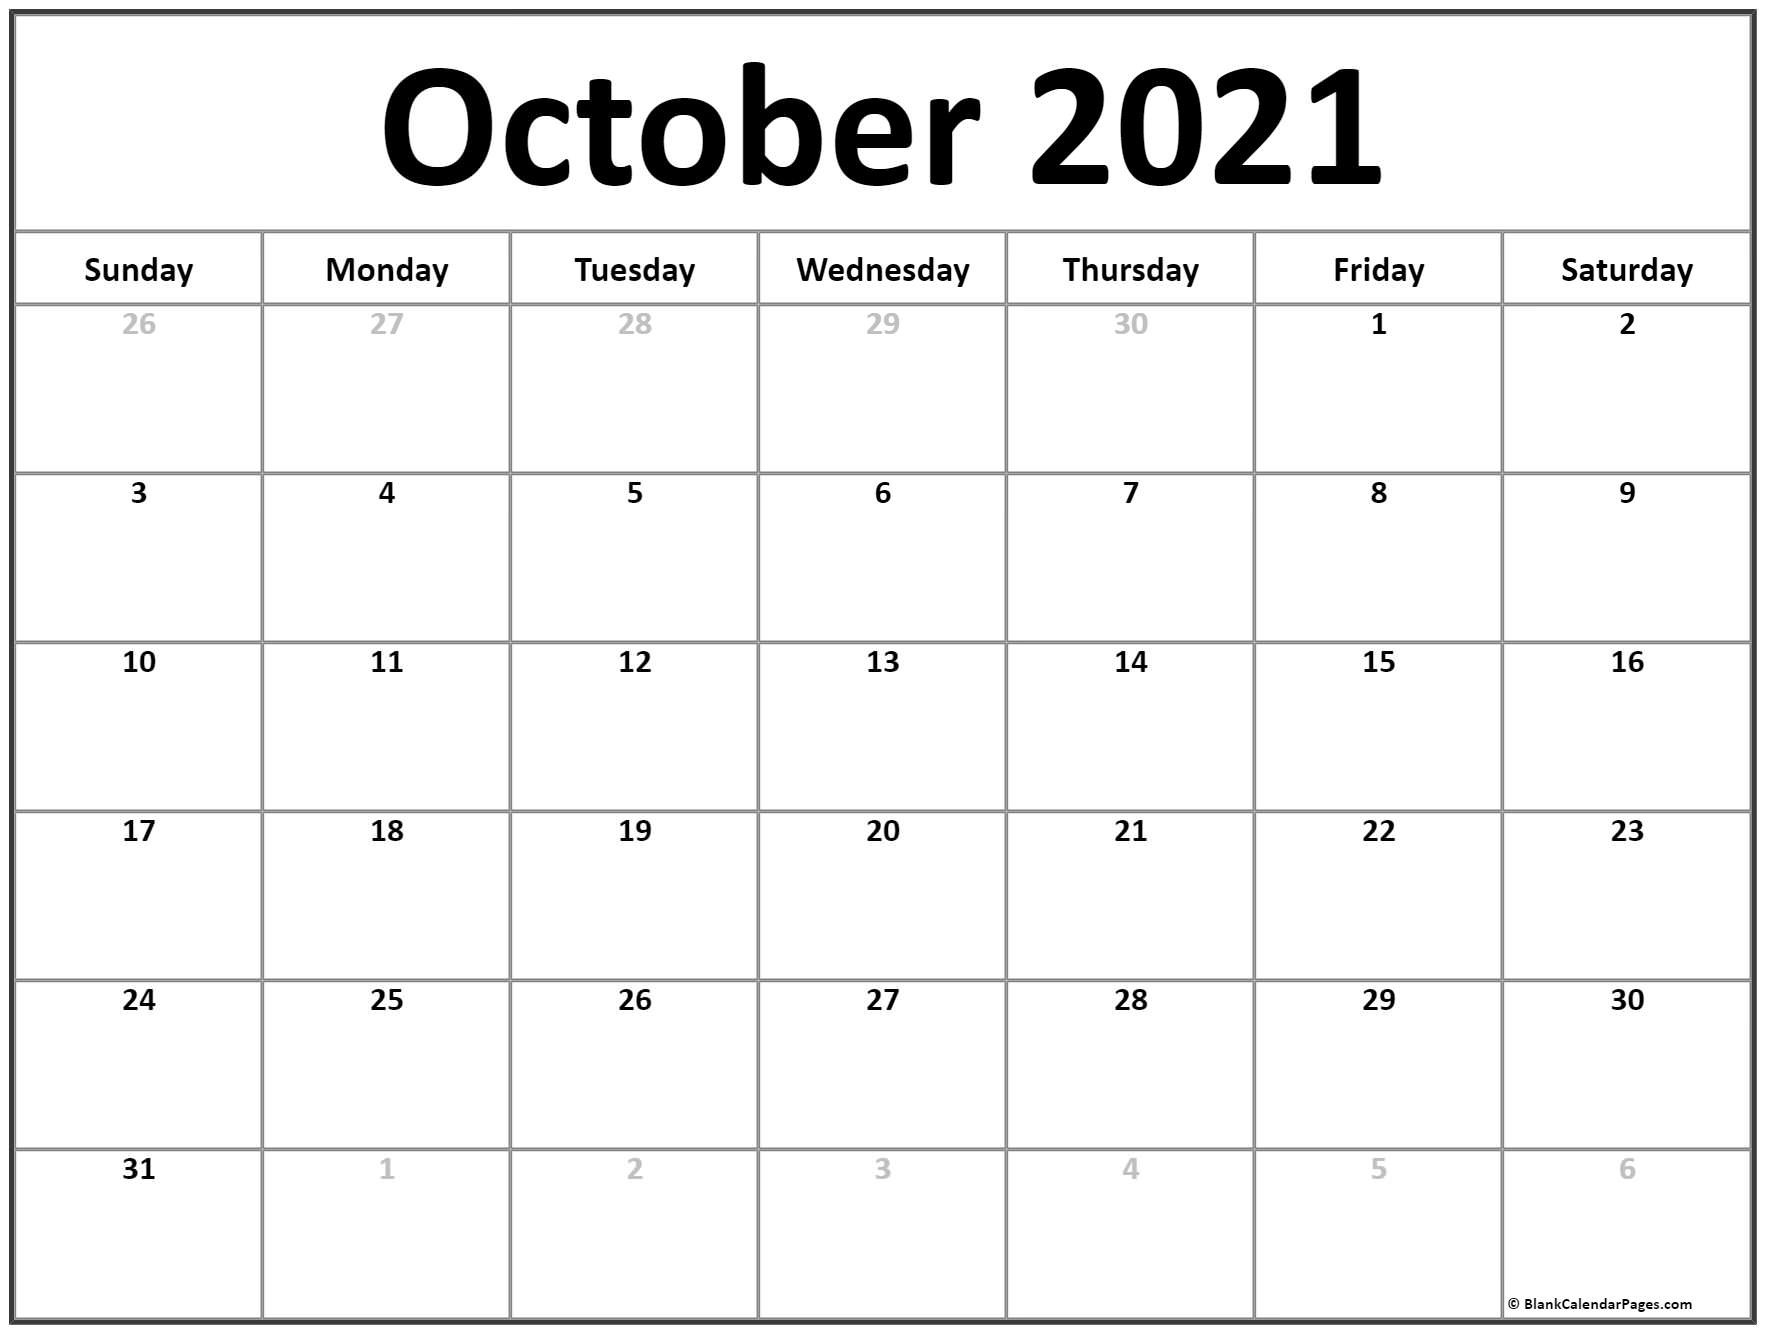 October 2021 Calendar | Free Printable Monthly Calendars-2021 Print Free Calendars Without Downloading